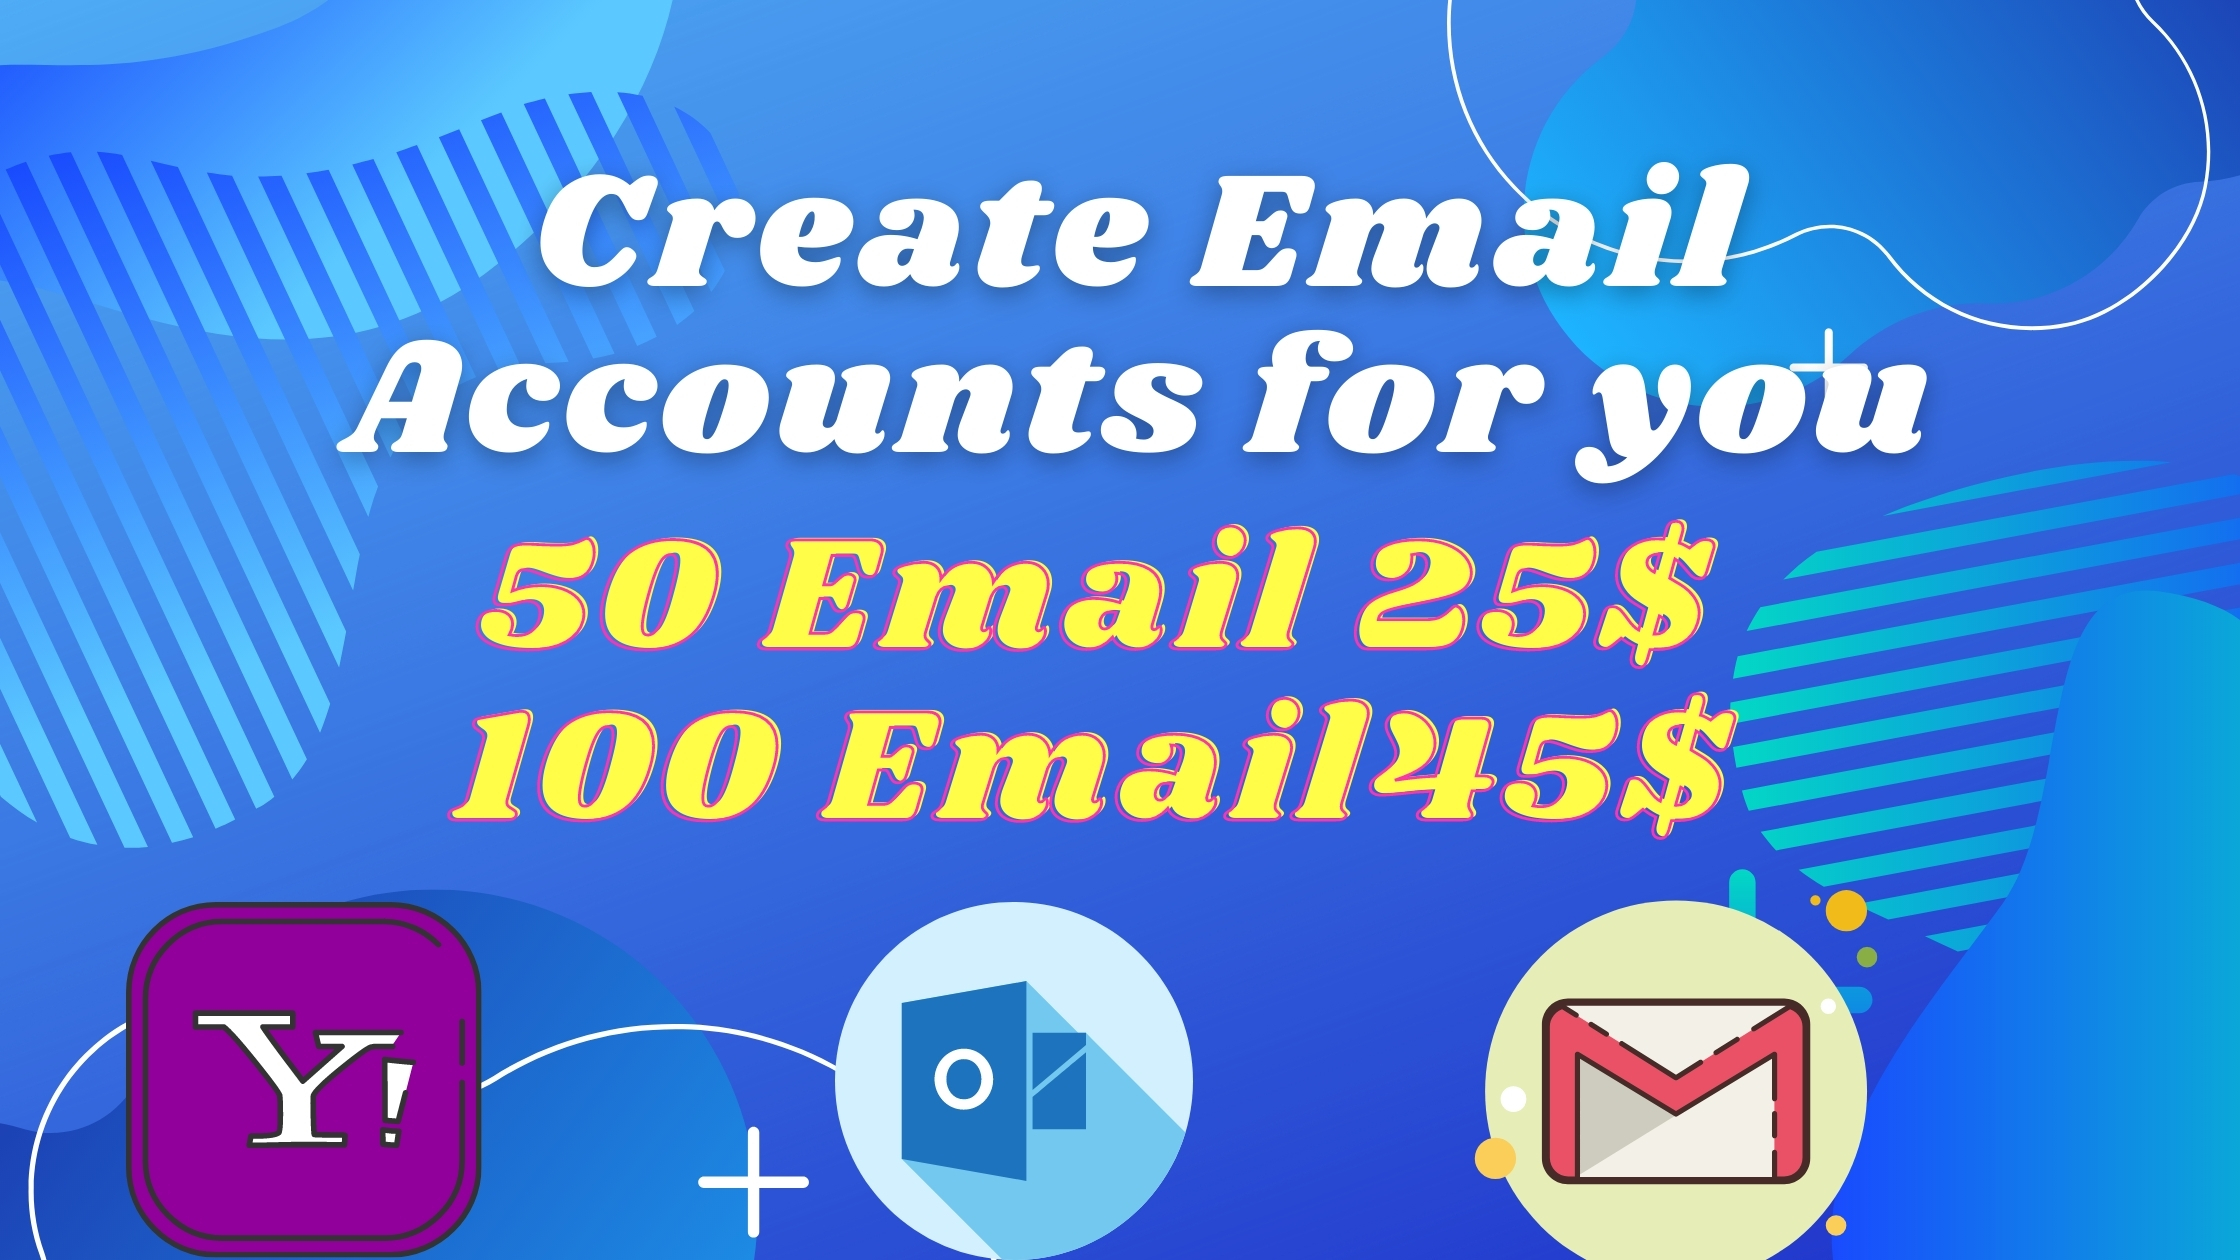 Create unlimited verified email accounts